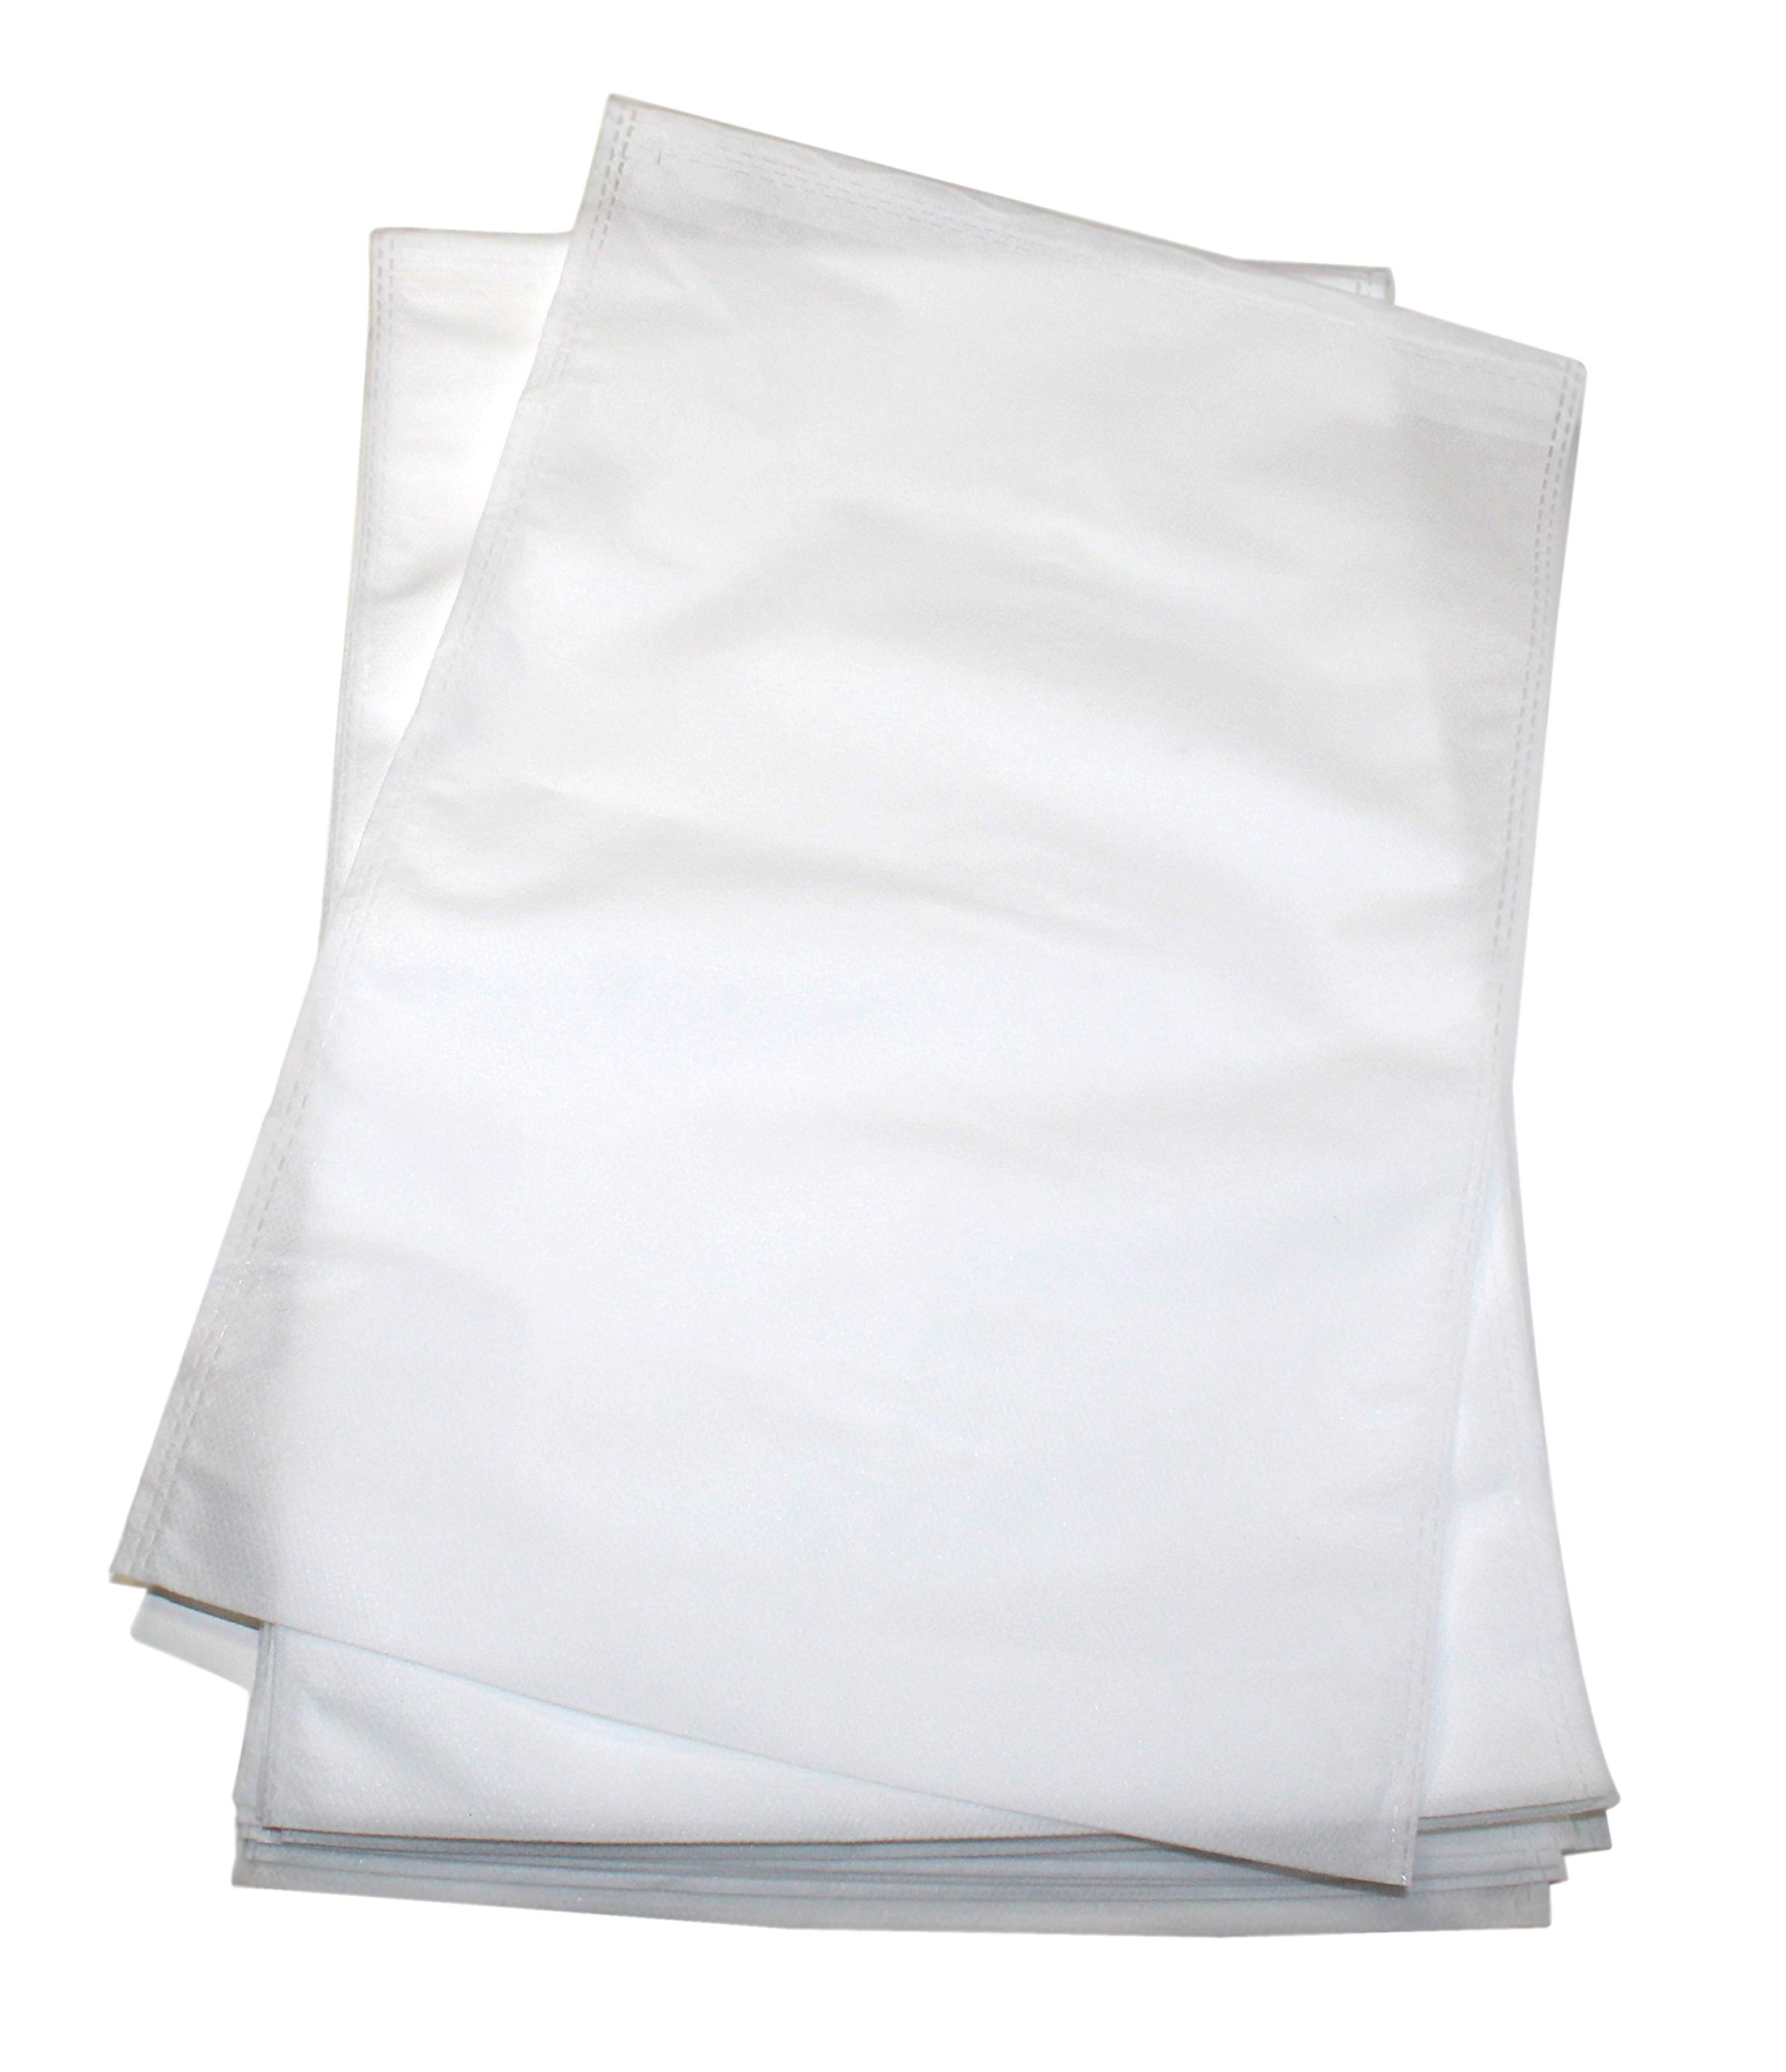 Lucore 24 PCs White Non-Woven Drawstring Travel & Home Disposable Storage Bags for Shoes, Laundry & Socks